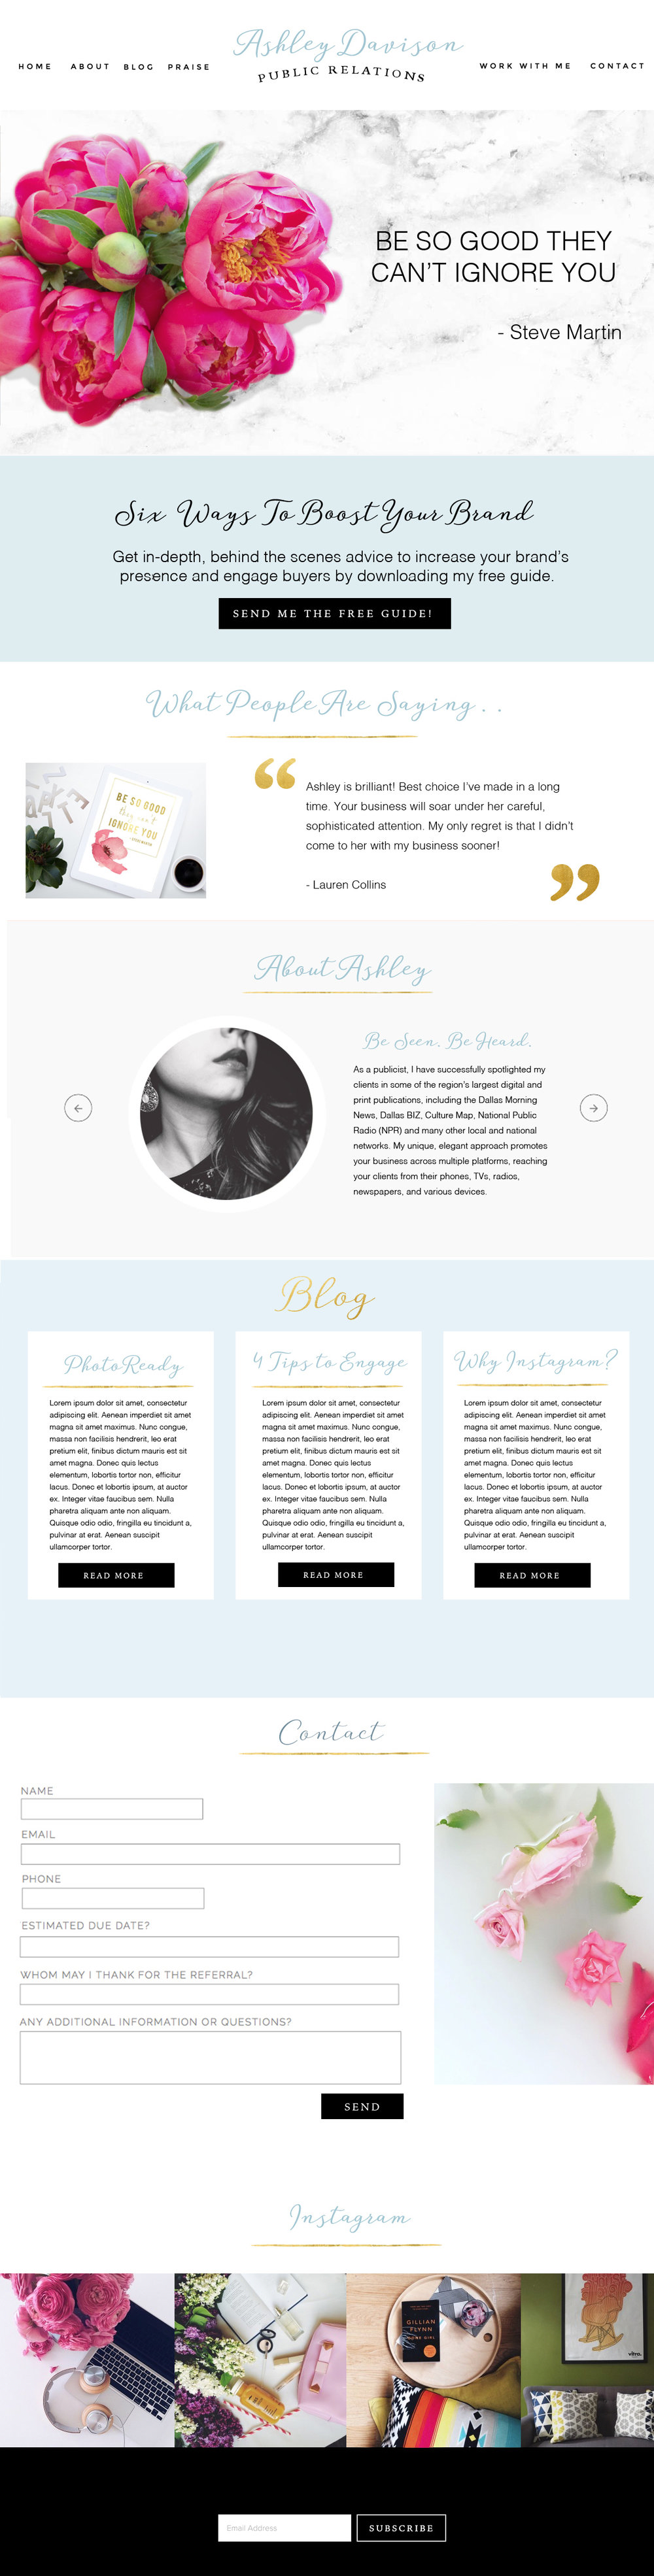 Ashley Davison - Beautiful Web Design